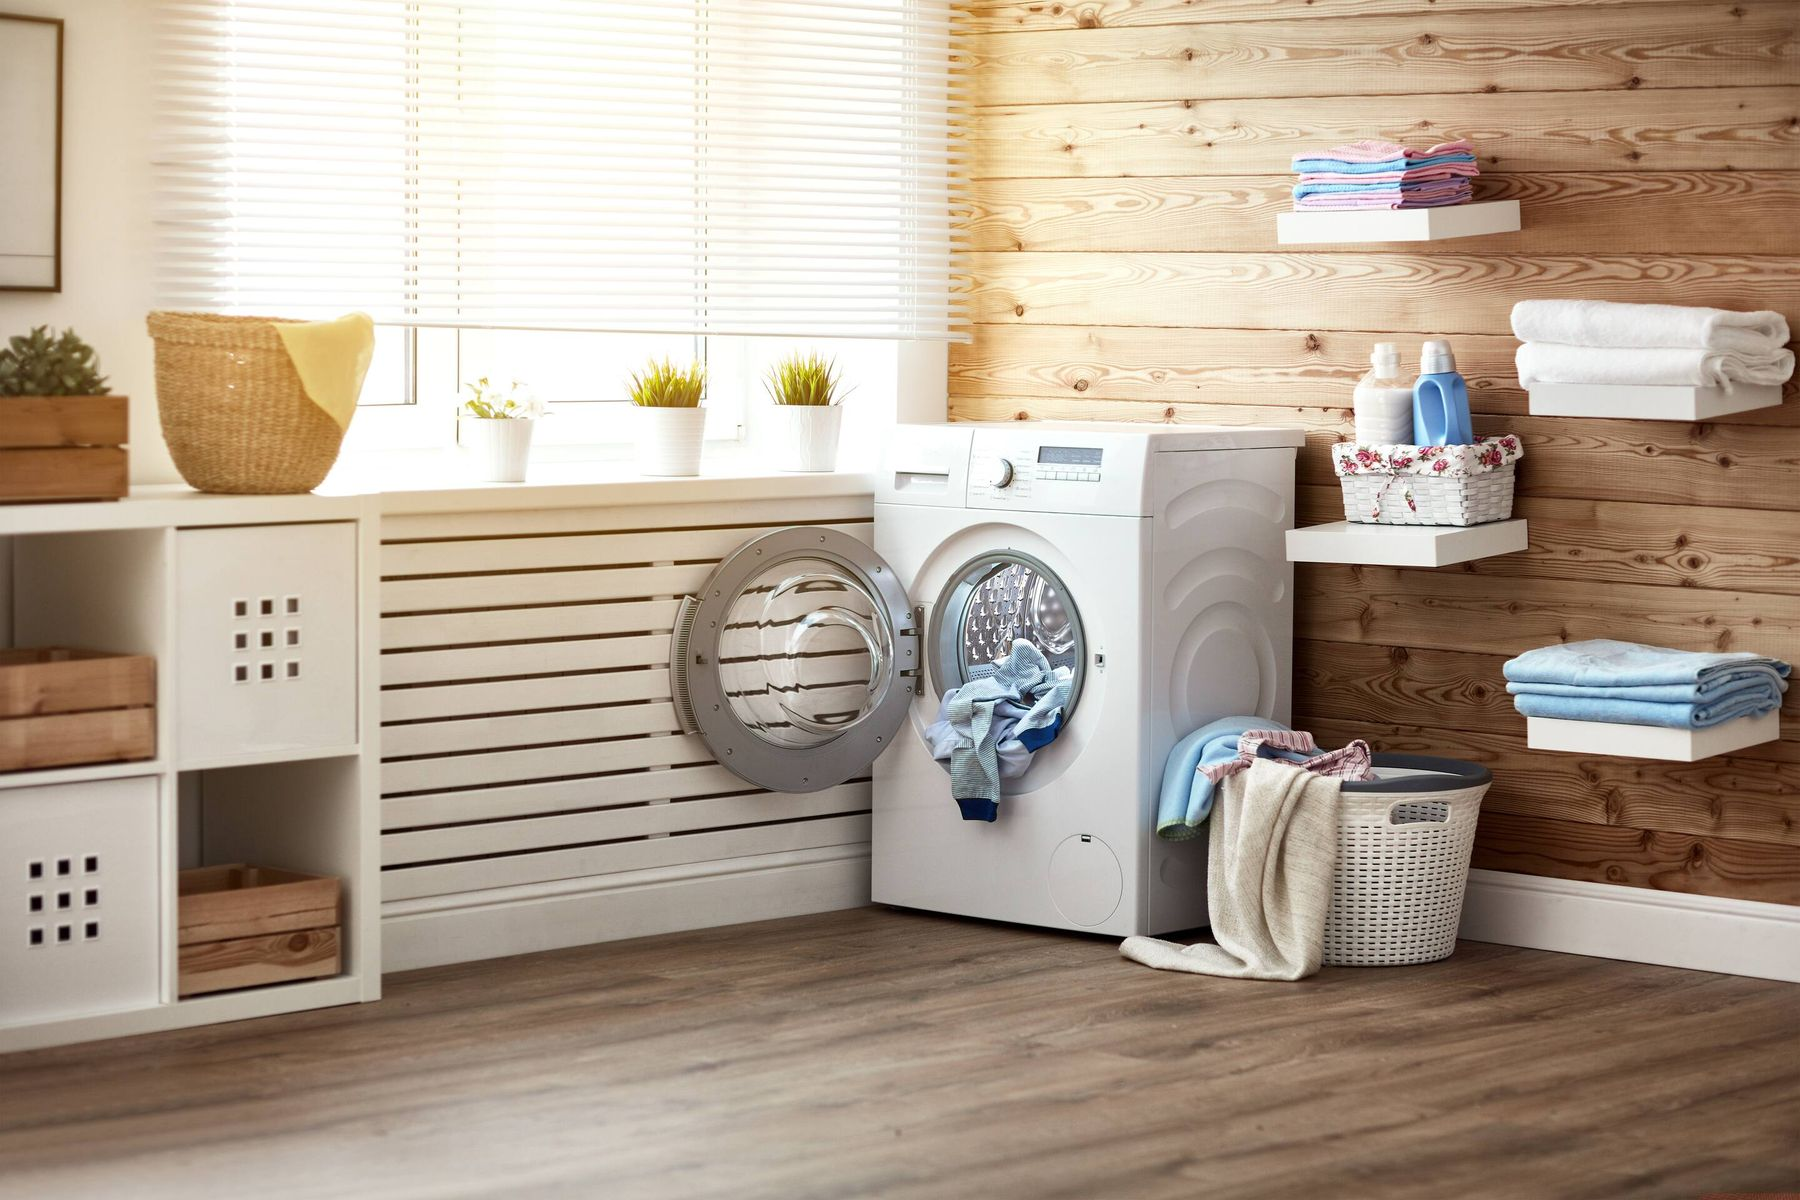 Buying a Washing Machine? Here's What You Should Know